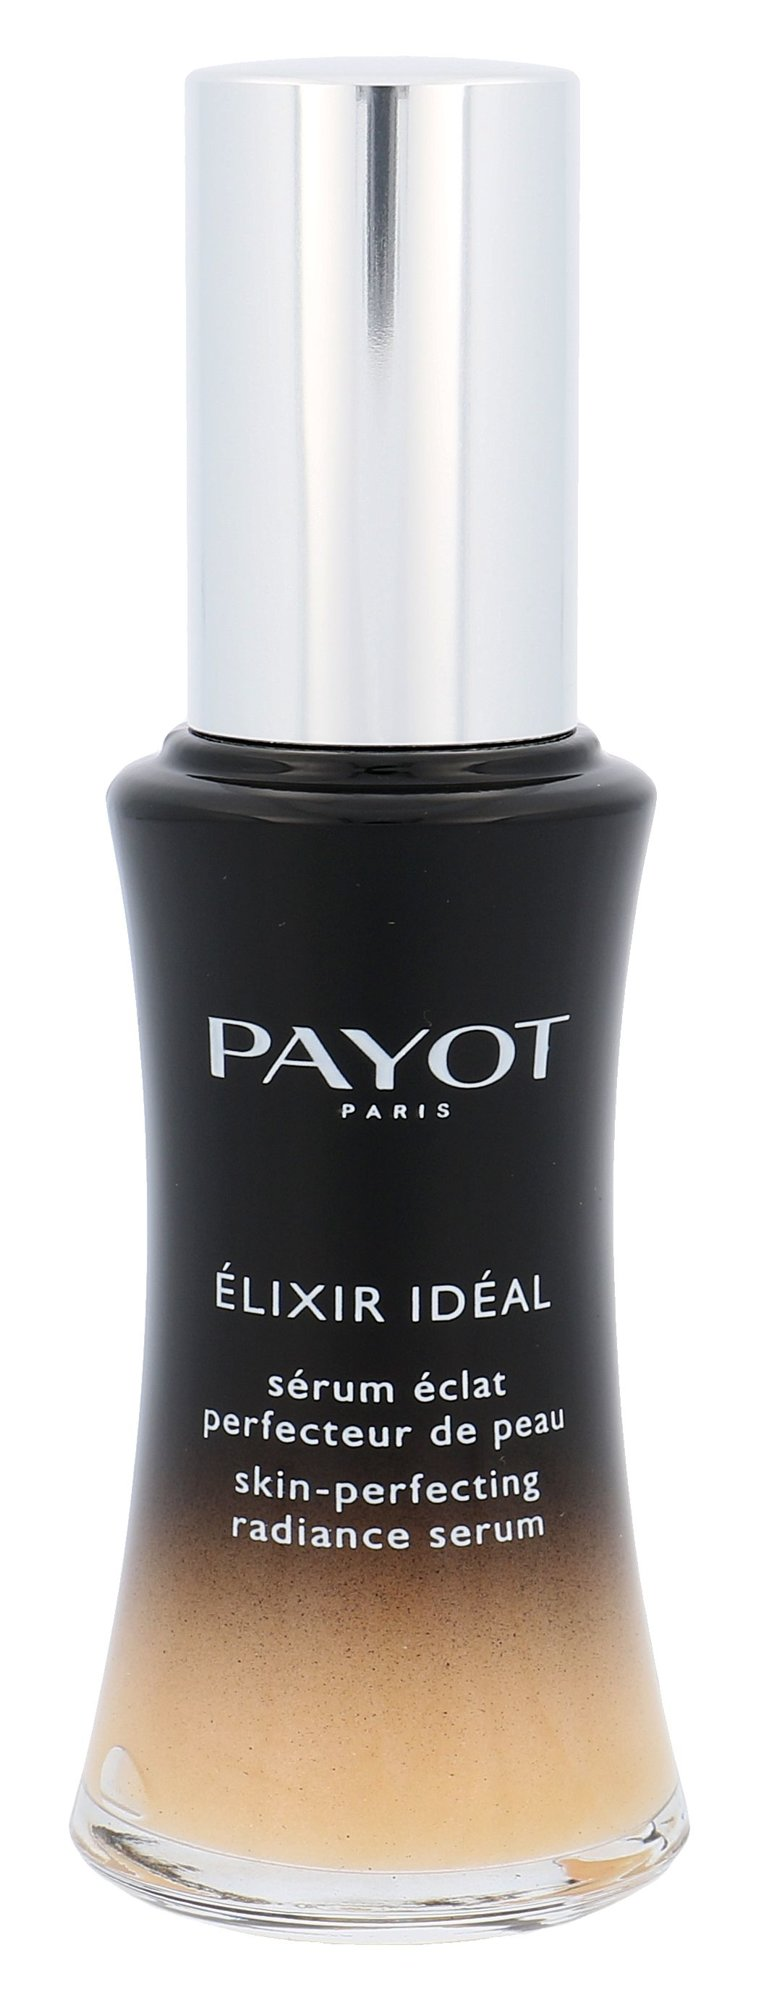 PAYOT Les Elixirs Cosmetic 30ml  Elixir Ideal